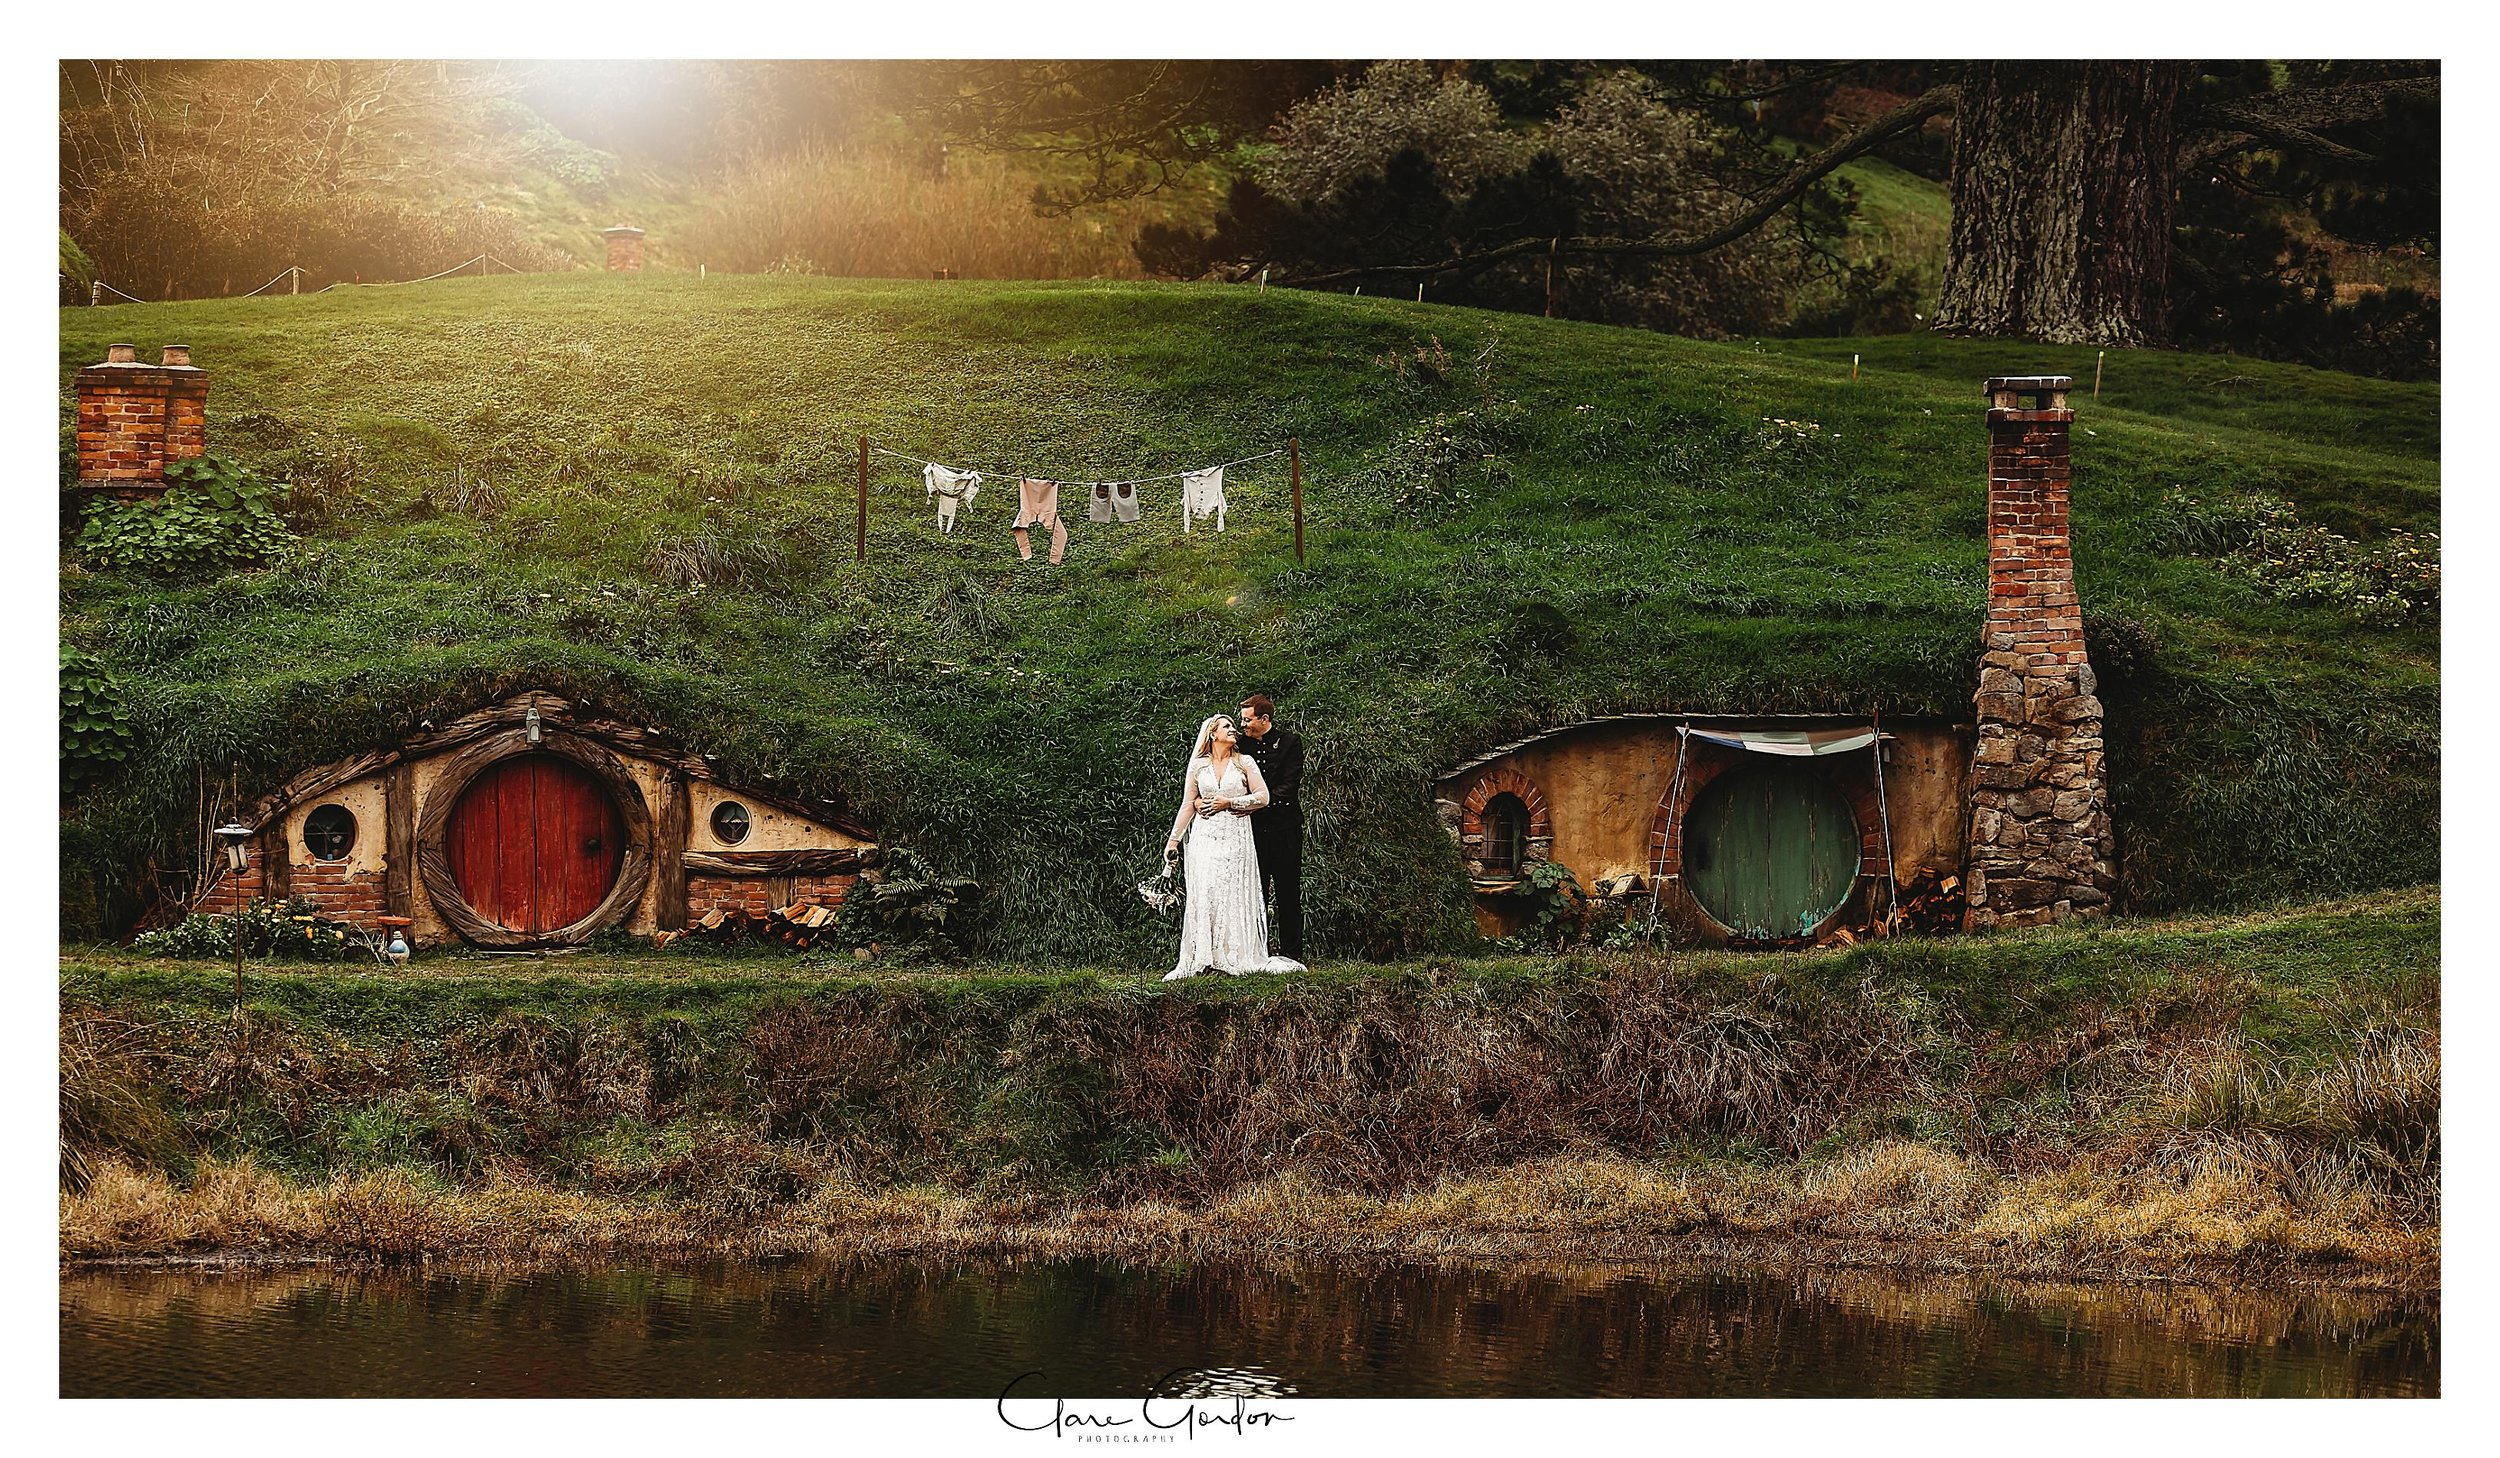 Hobbiton-movie-set-wedding-photo-matamata-bride-and-groom-Photo (4).jpg